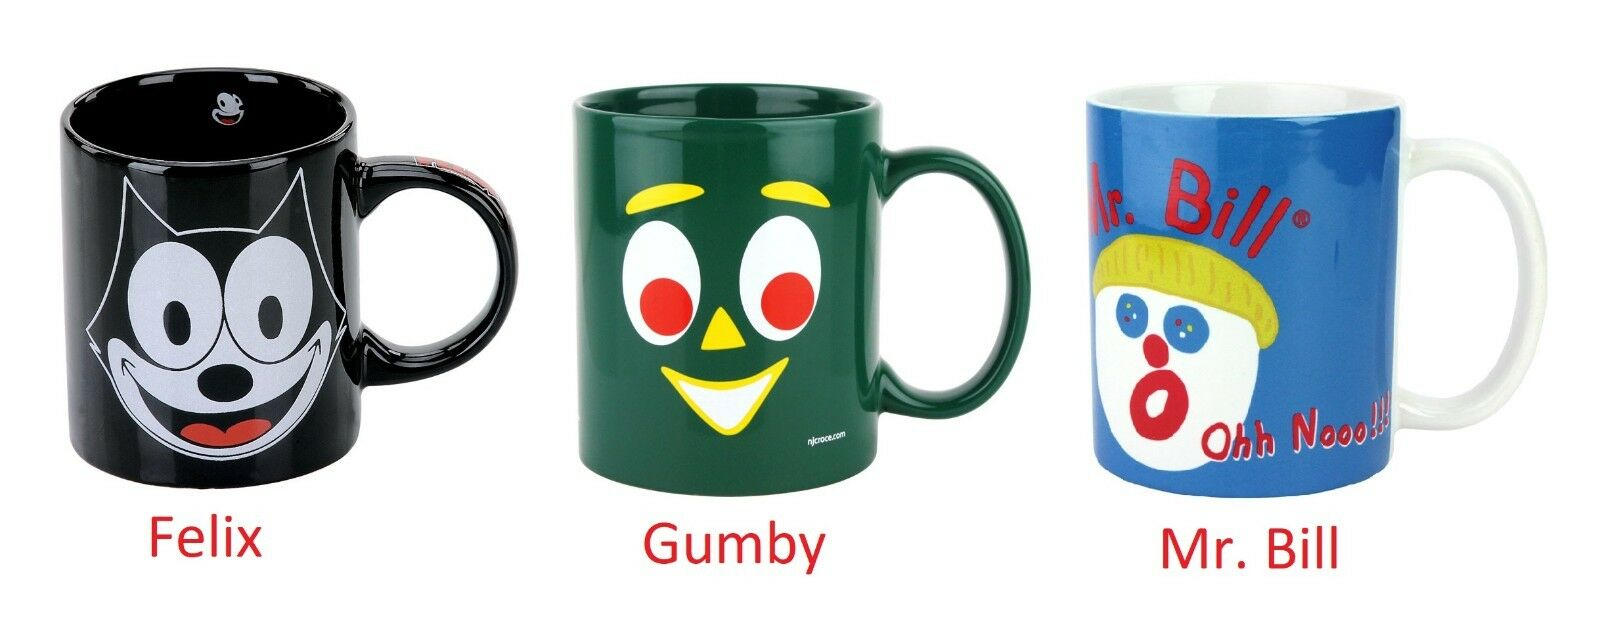 ceramic cup coffee mug felix gumby mr bill